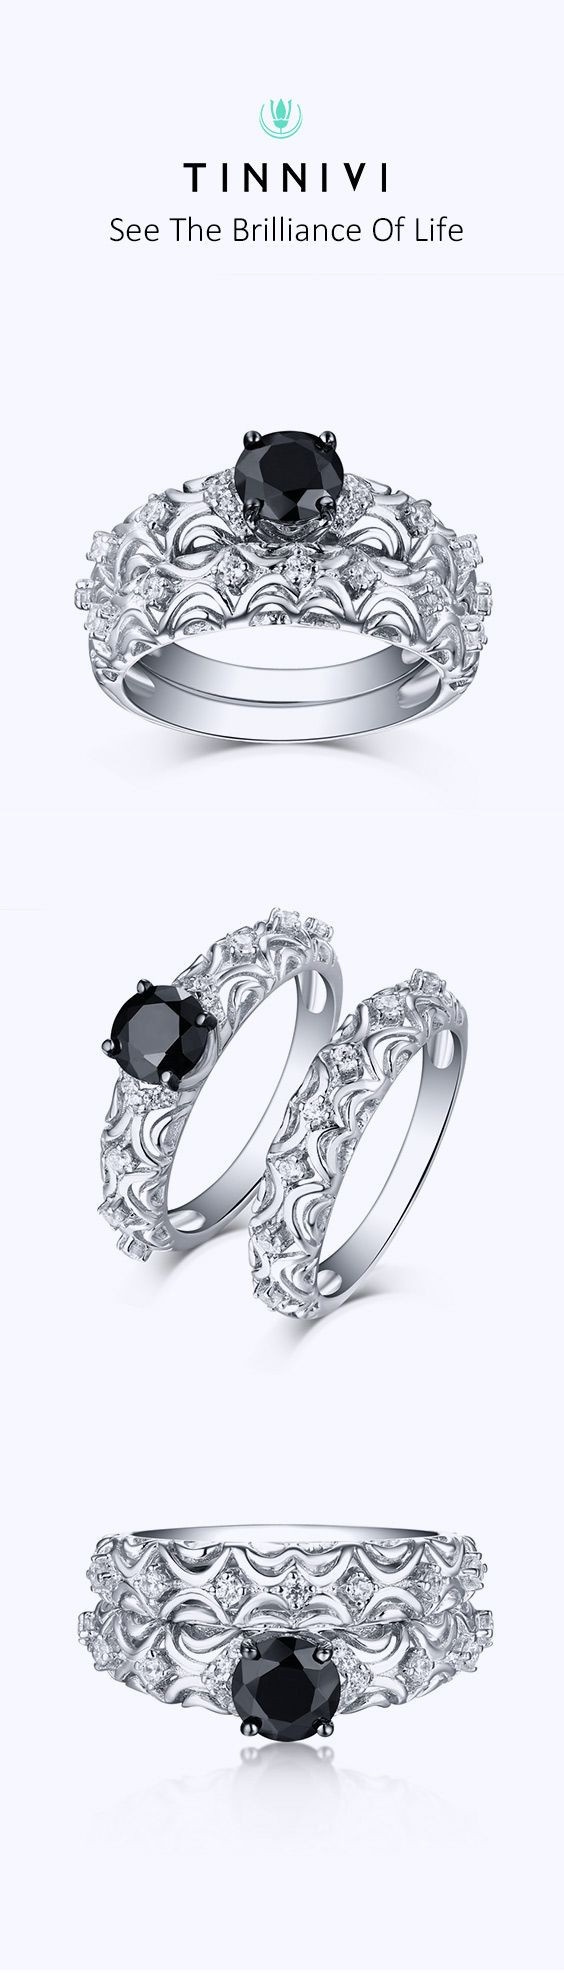 9d8a75a93f6664 Shop Tinnivi Vintage Style Sterling Sliver Black Diamond Women's Bridal  Ring Set online, Tinnivi Jewelry creates quality fine jewelry at gorgeous  prices.